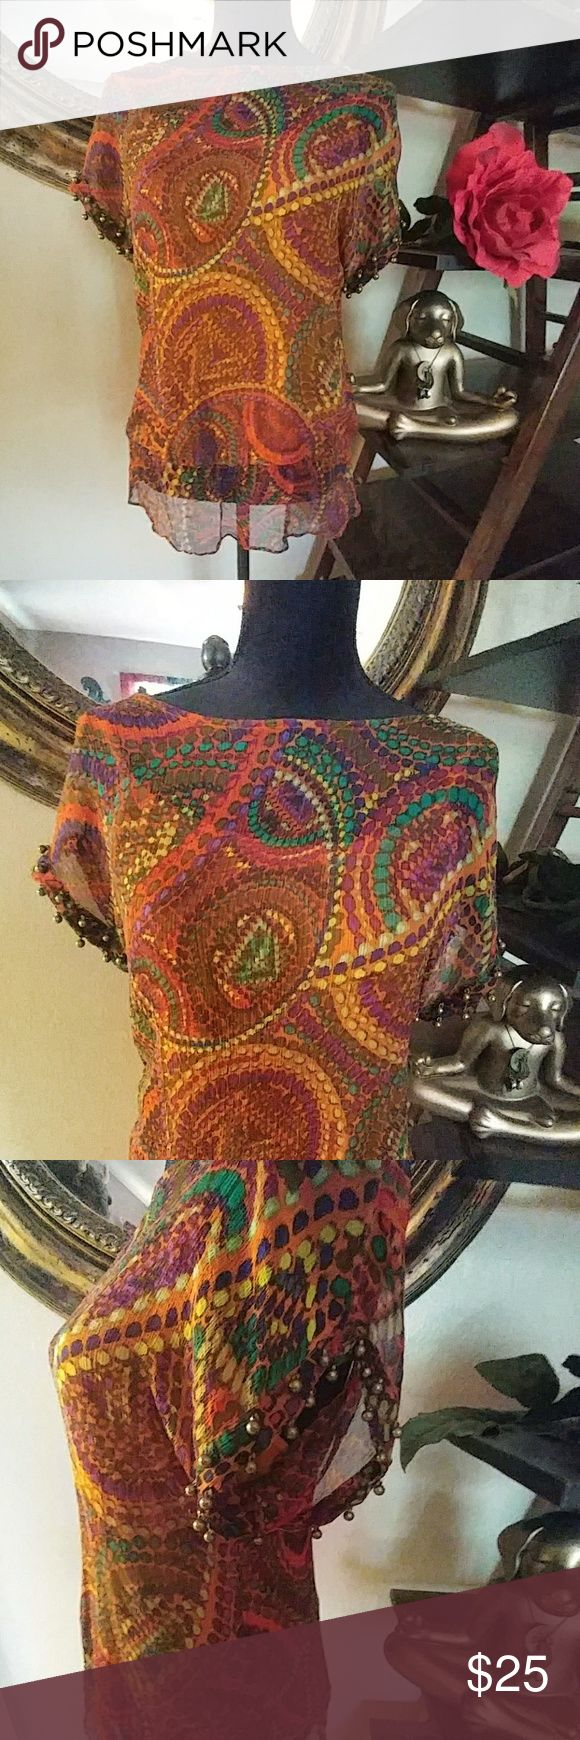 Colorful unique boho top! Very unique top! Very colorful top with two layered sheer material. Built in burnt Orange cami top that is removeable make top not sheer. Cute antique gold colored beads to sleeves, all intact. In excellent condition! Chelsea & Theodore is brand. Tops Blouses